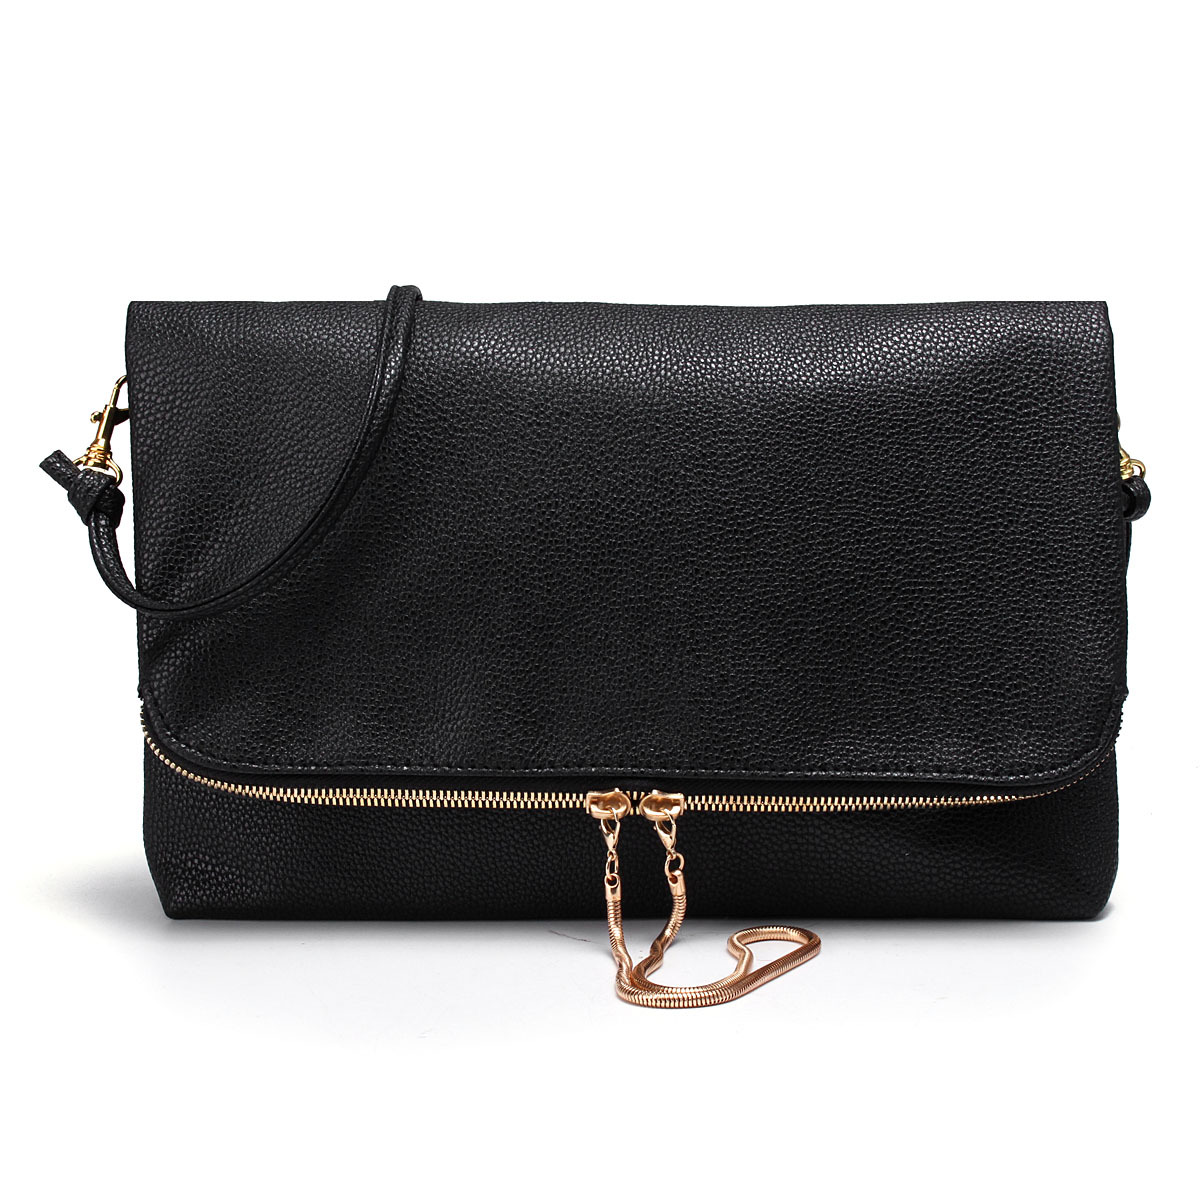 I think the best travel shoulder bags for women are cross body purses. There are a variety of styles available depending on the type of travel you plan on doing. One of the best features of cross body purses and travel shoulder bags for women are convenient compartments that allow you to organize and have easy access to your belongings.